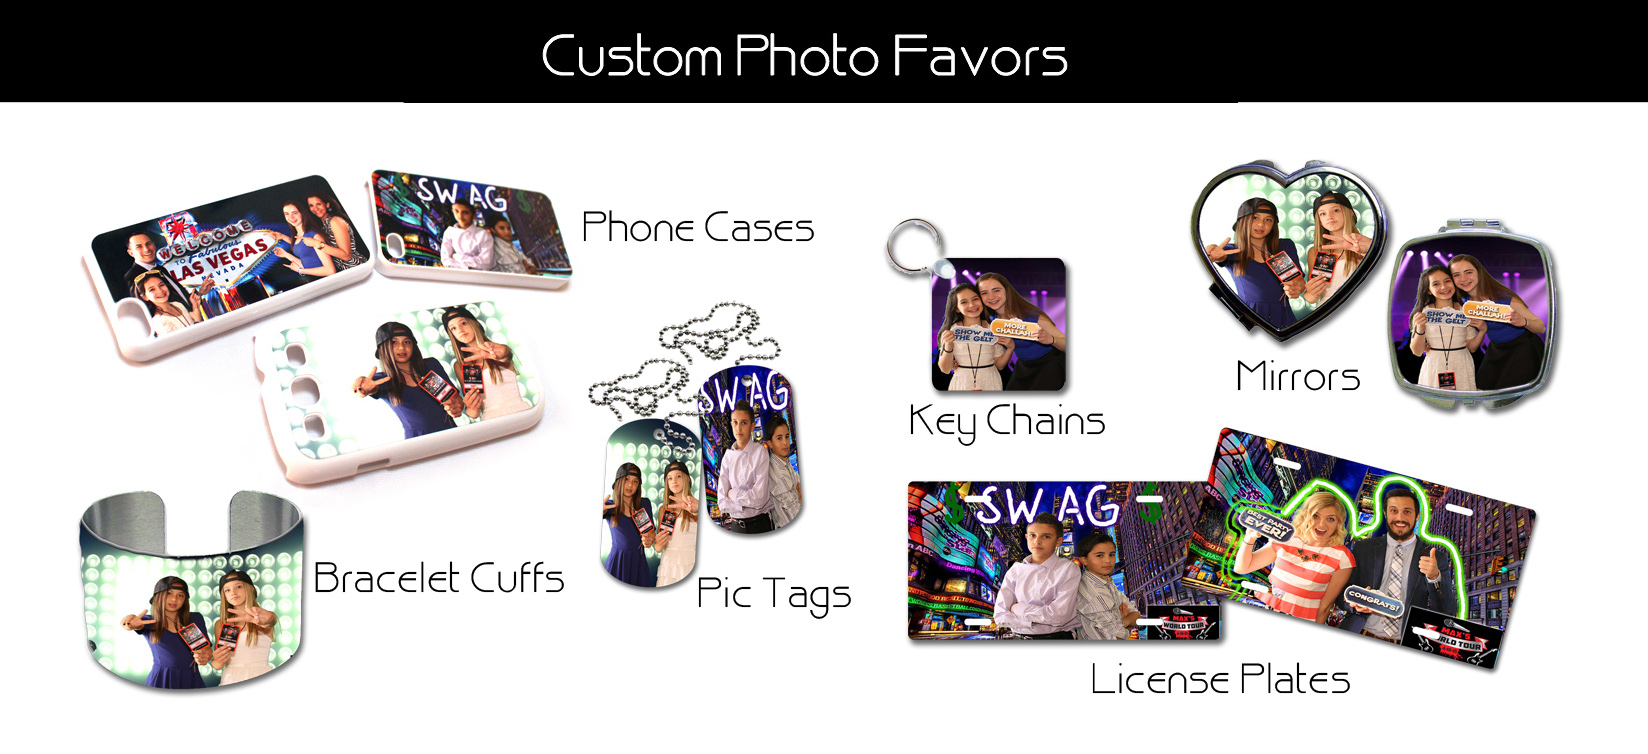 las vegas photo booth photo favors key chains phone cases license plates dog tags ID cards